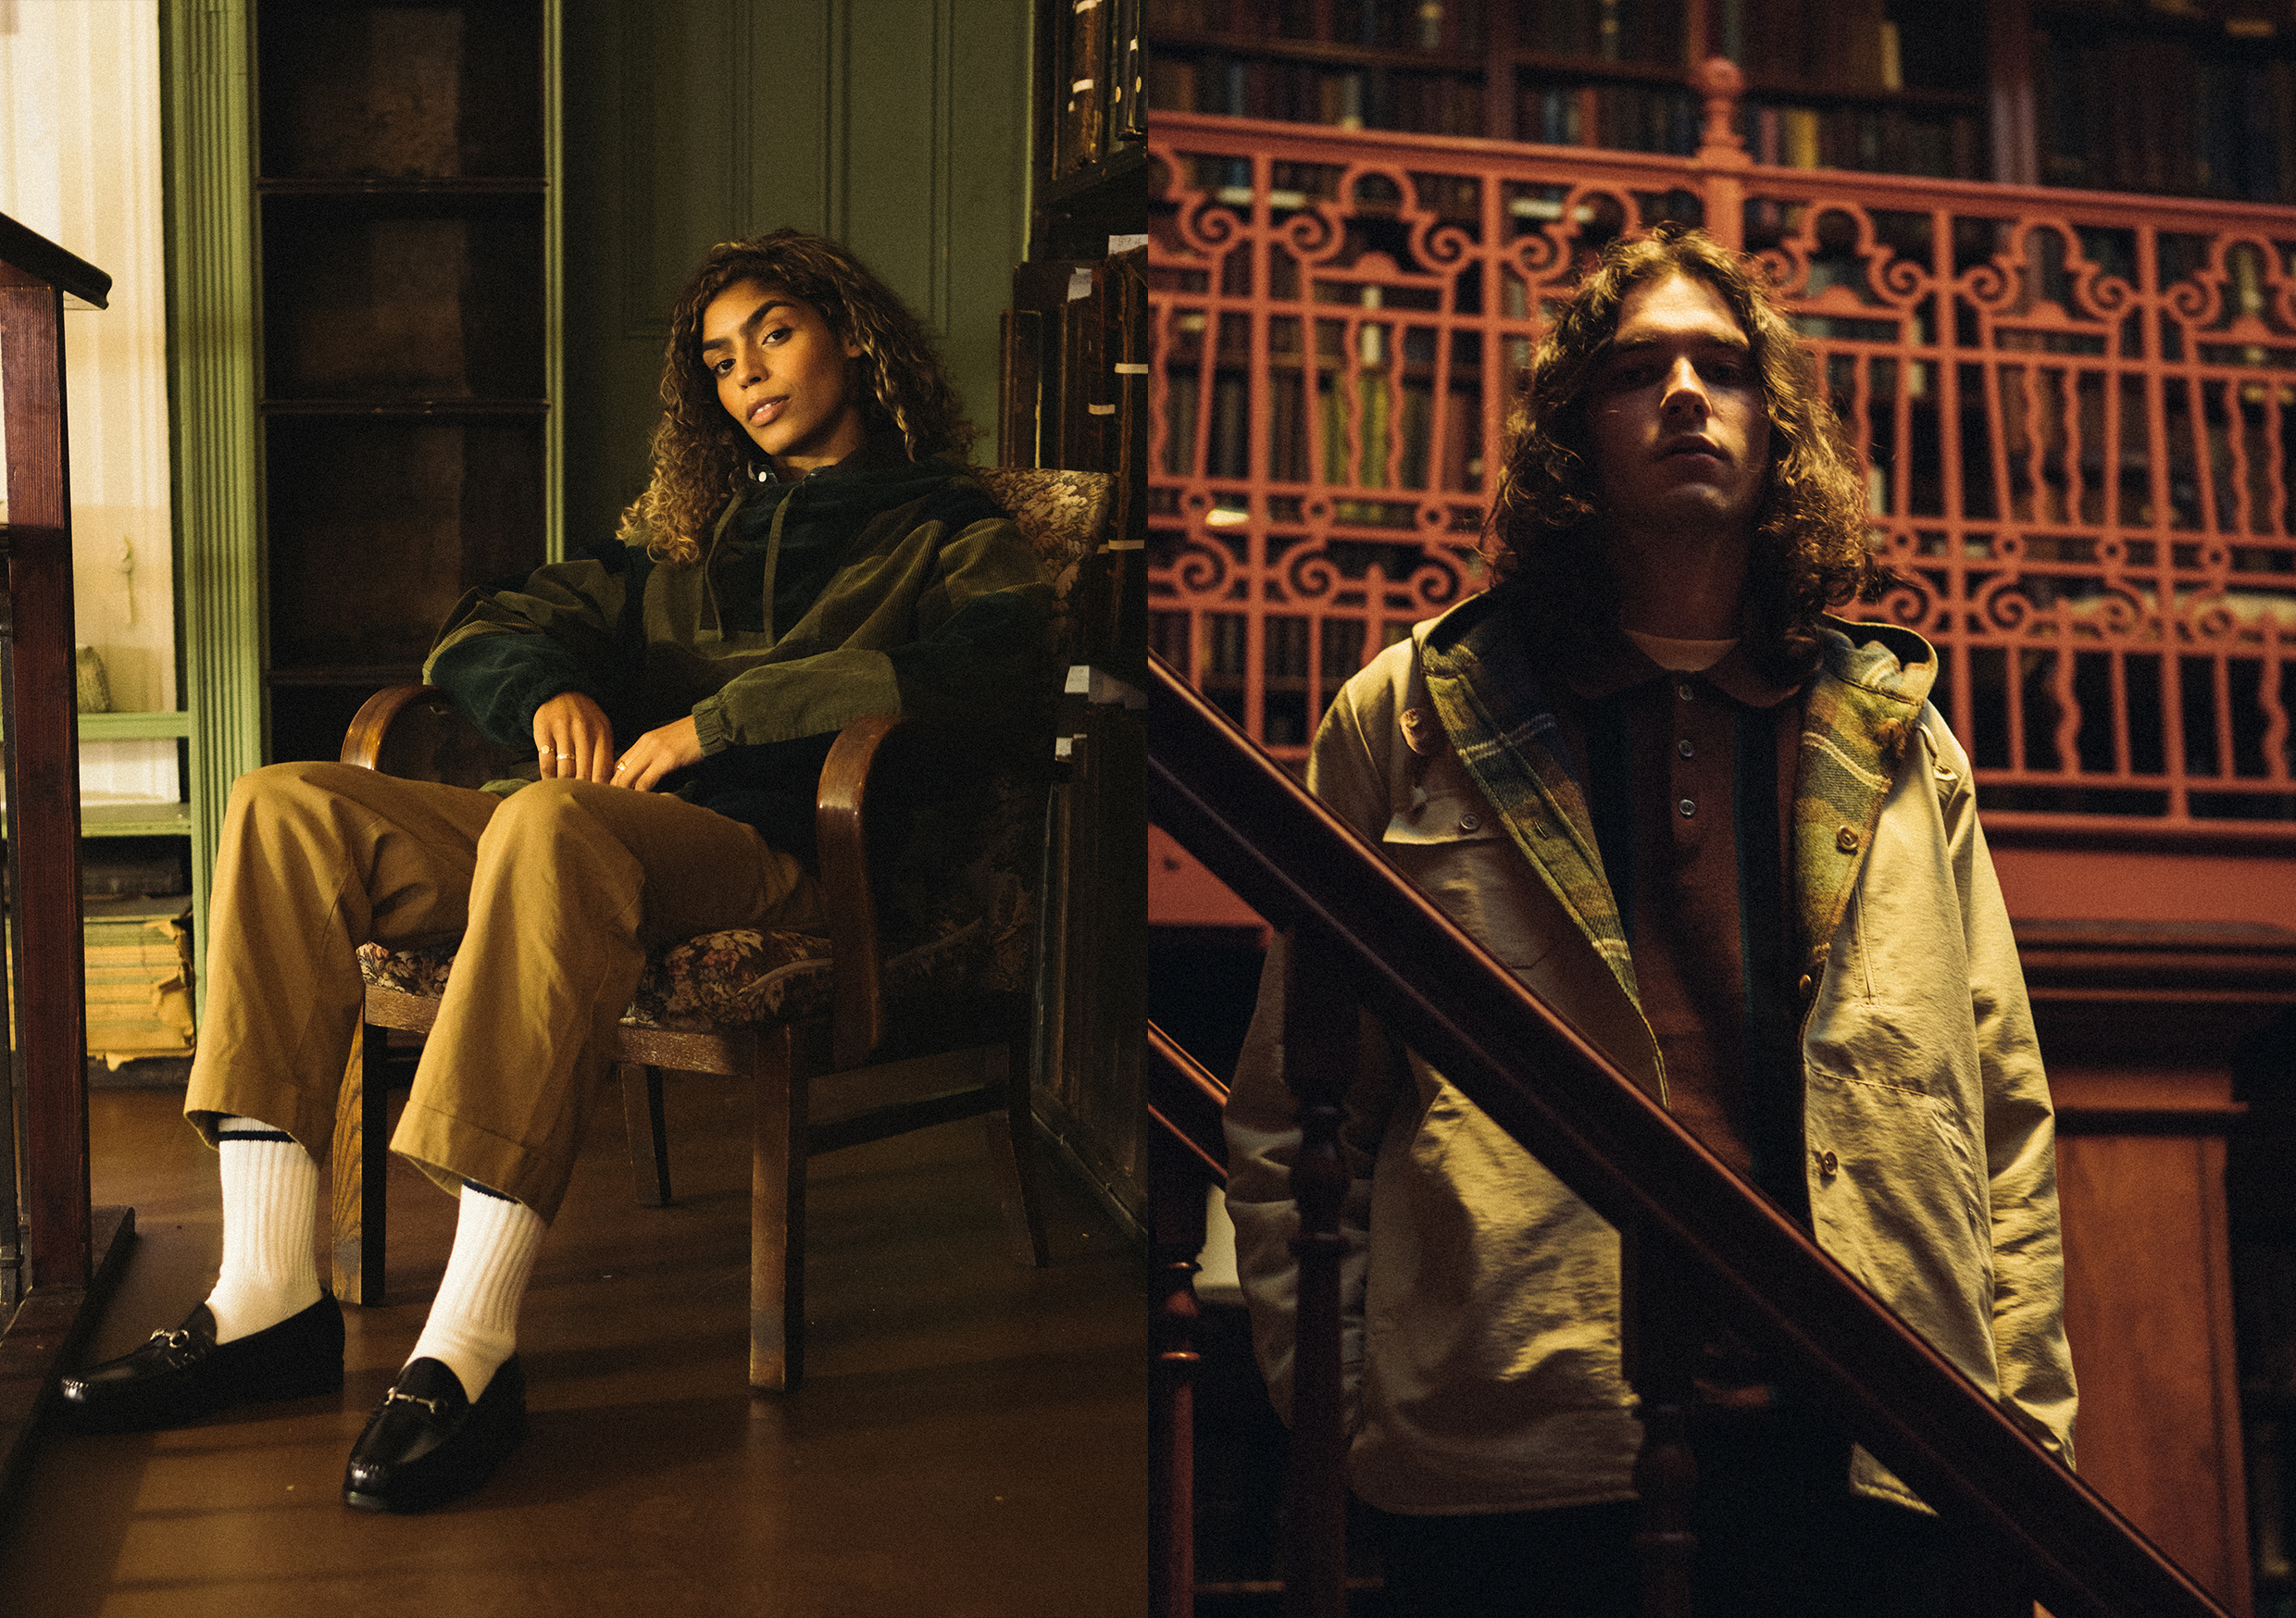 beams plus AW20 corduroy pullover and overshirt editorial at Leeds library